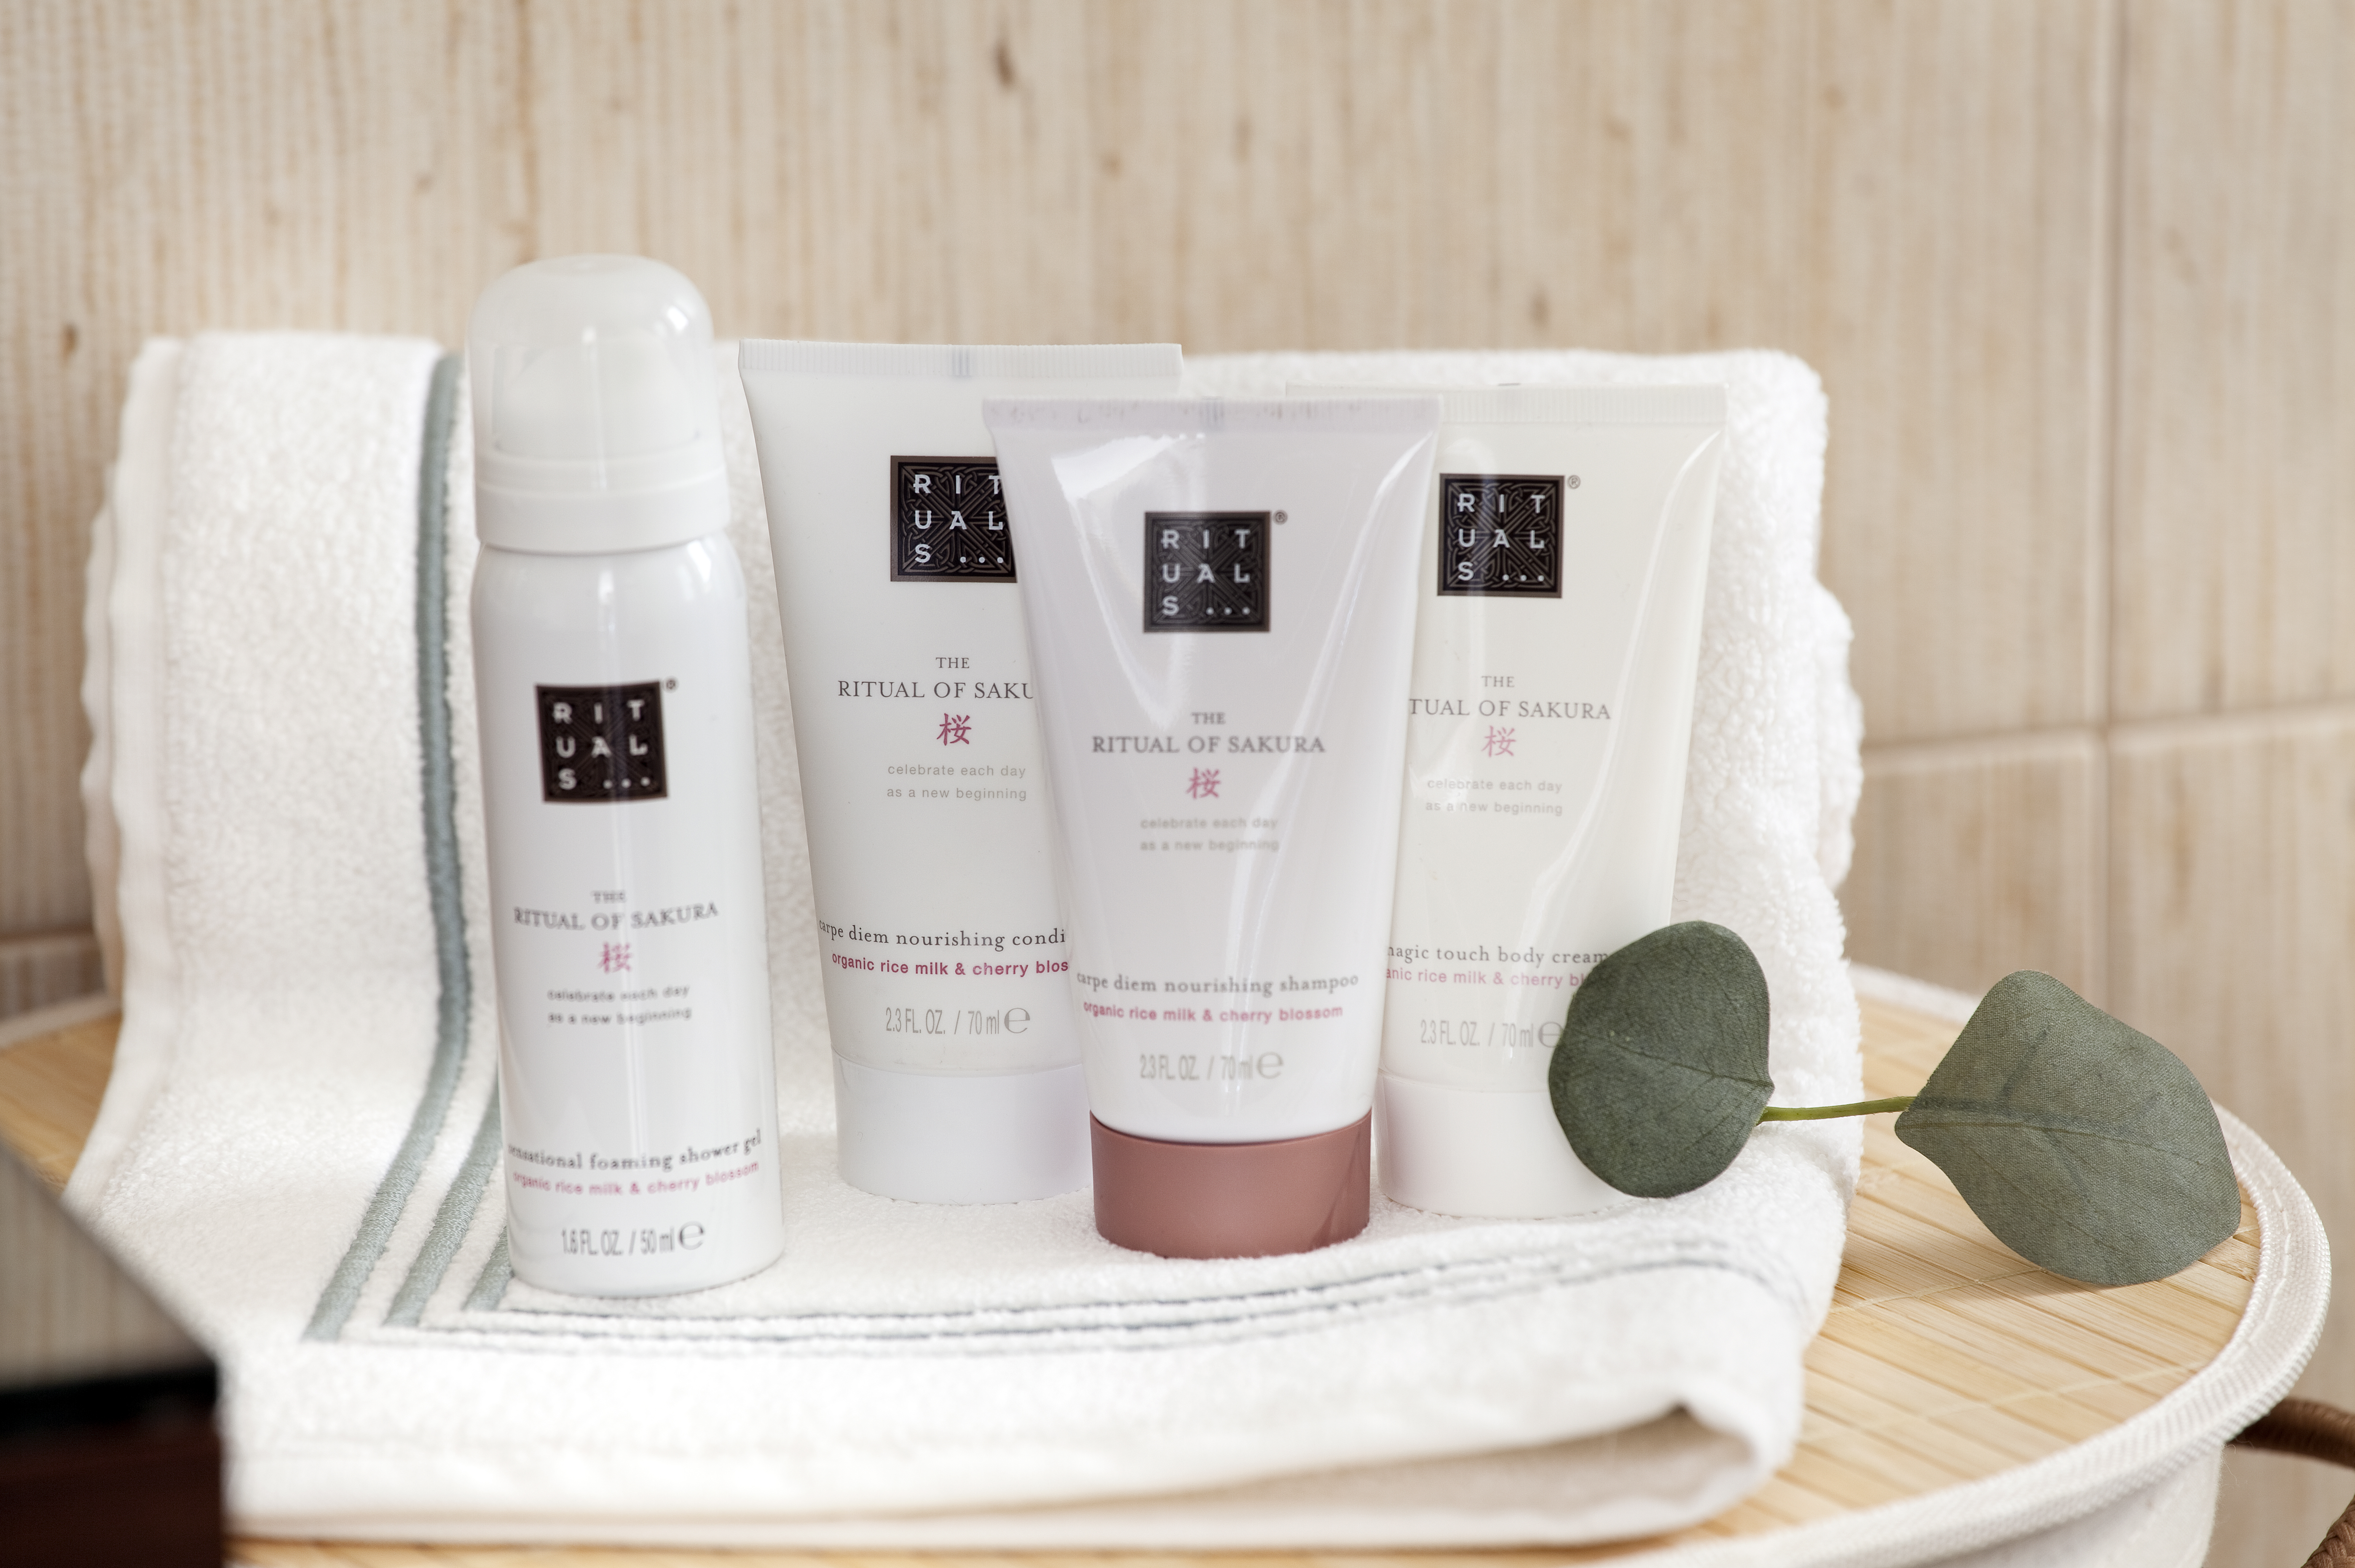 Bath products by Rituals®